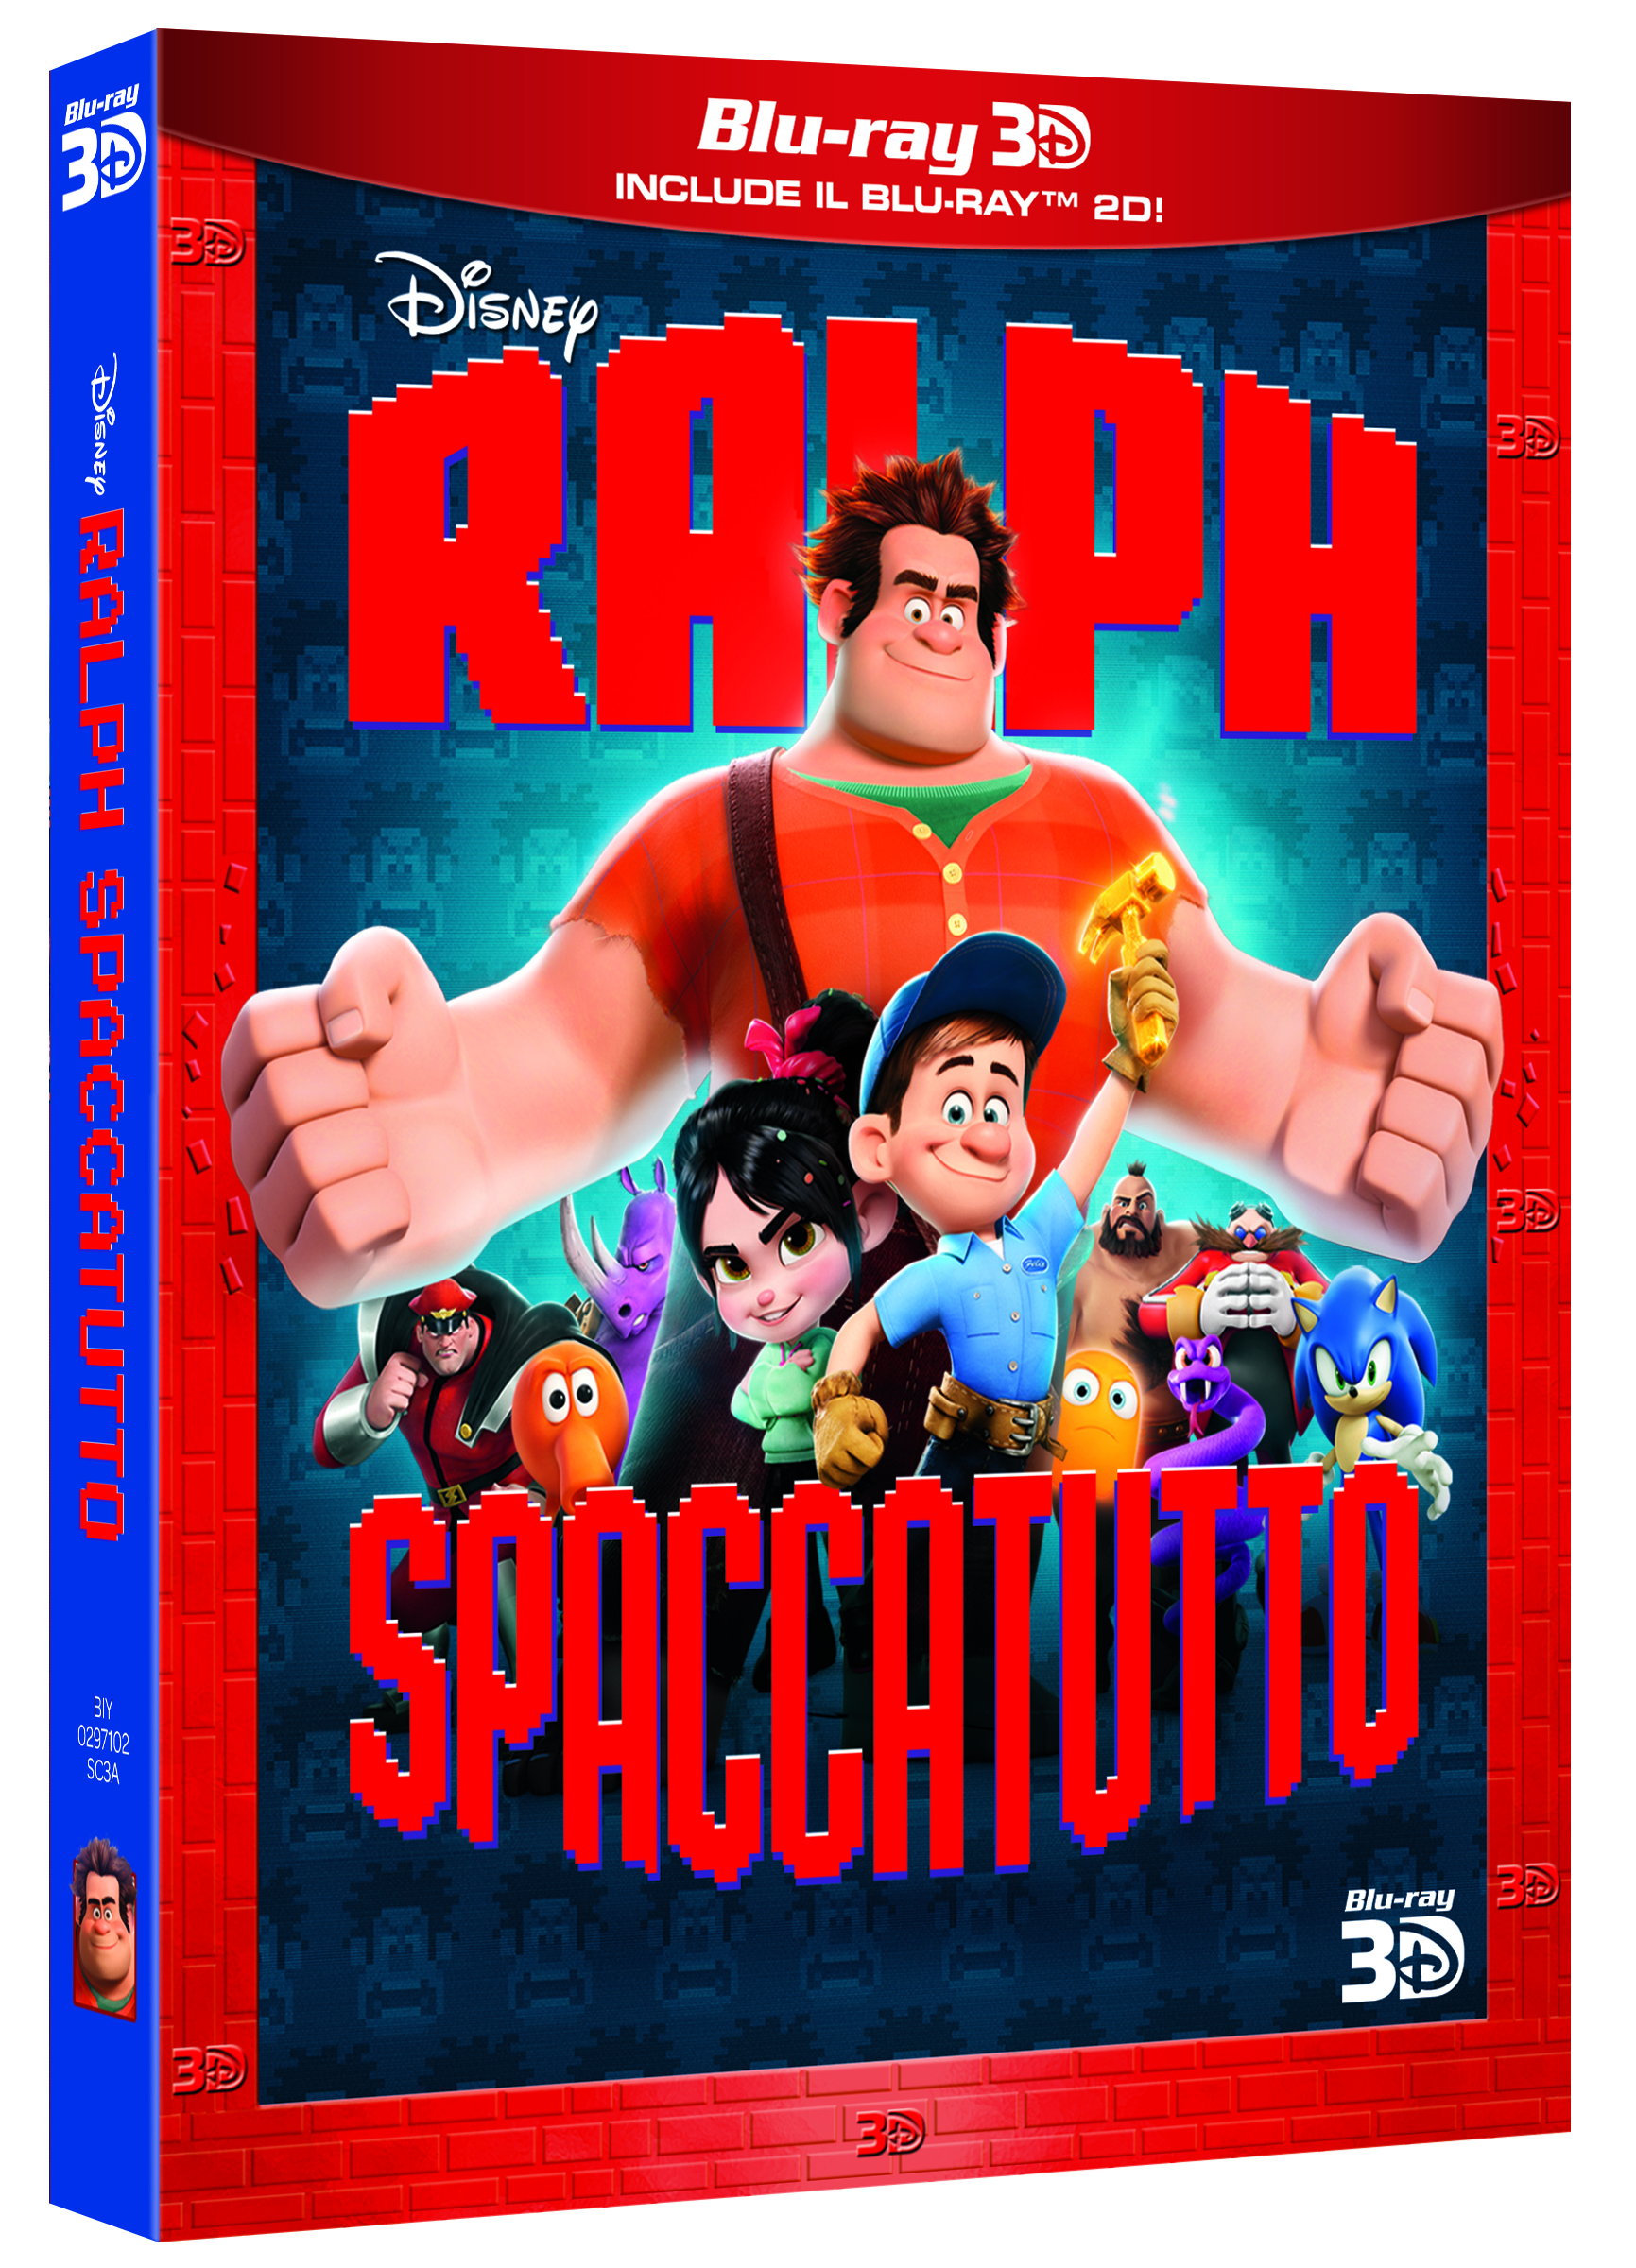 ralph spaccatutto blu-ray 3d